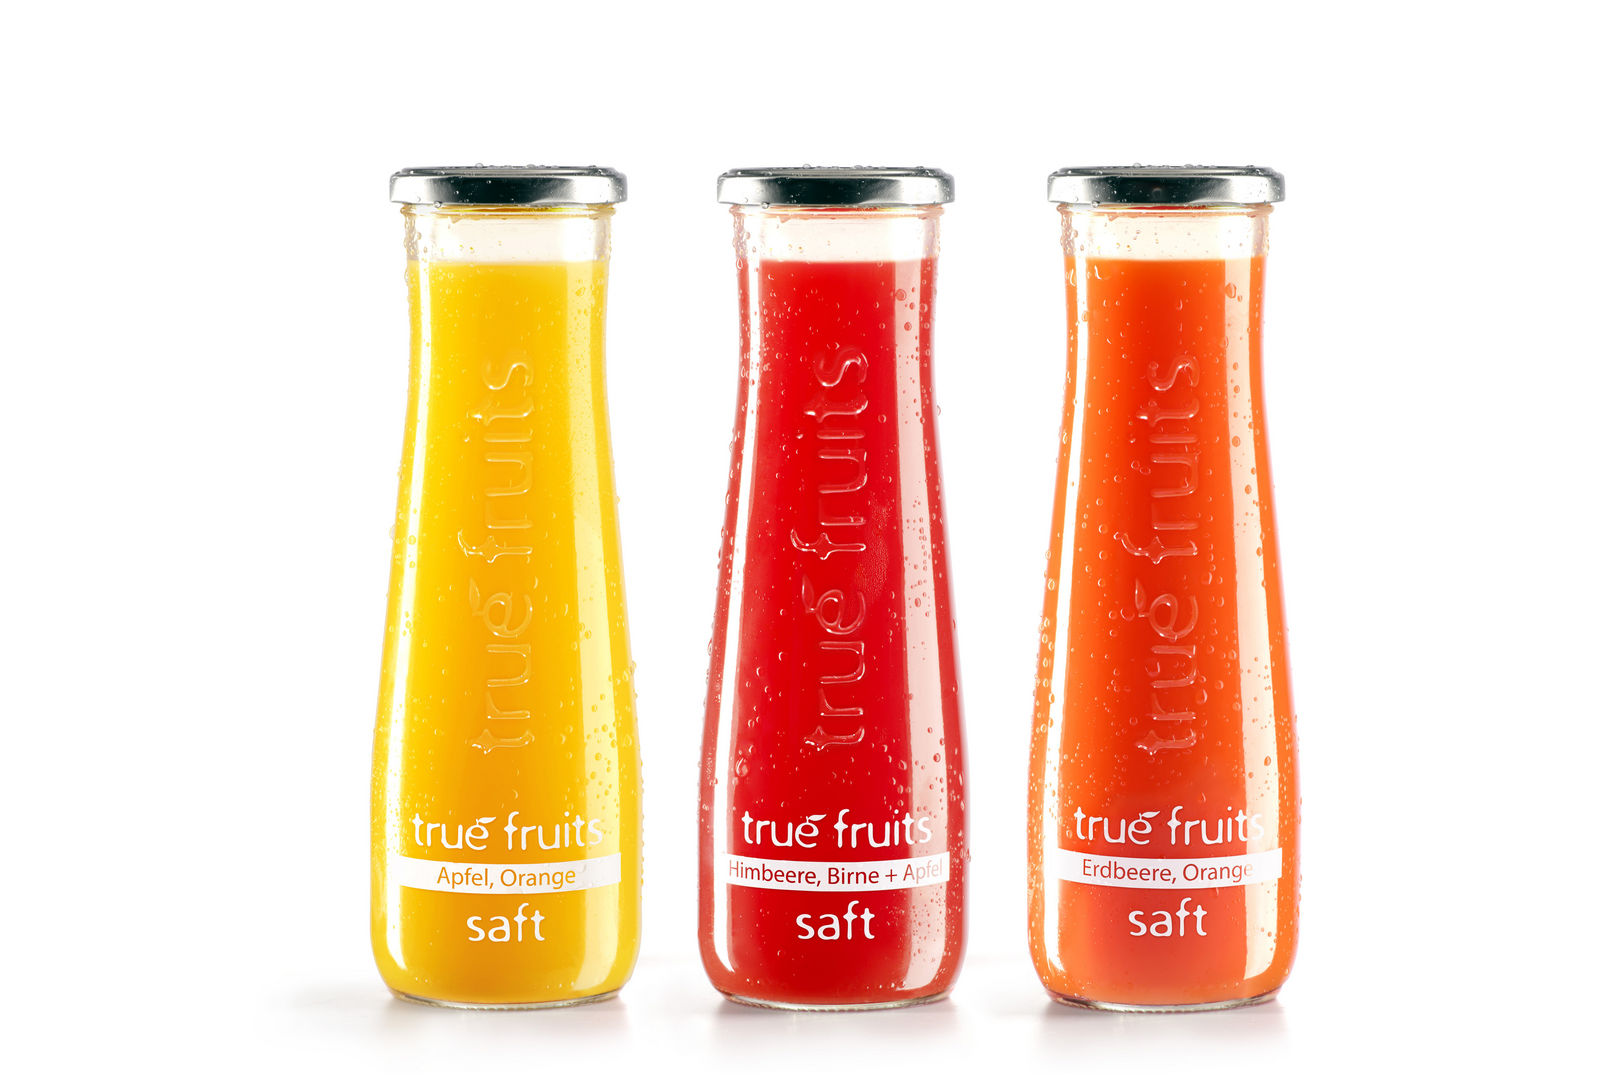 True Fruits Saft - Entry